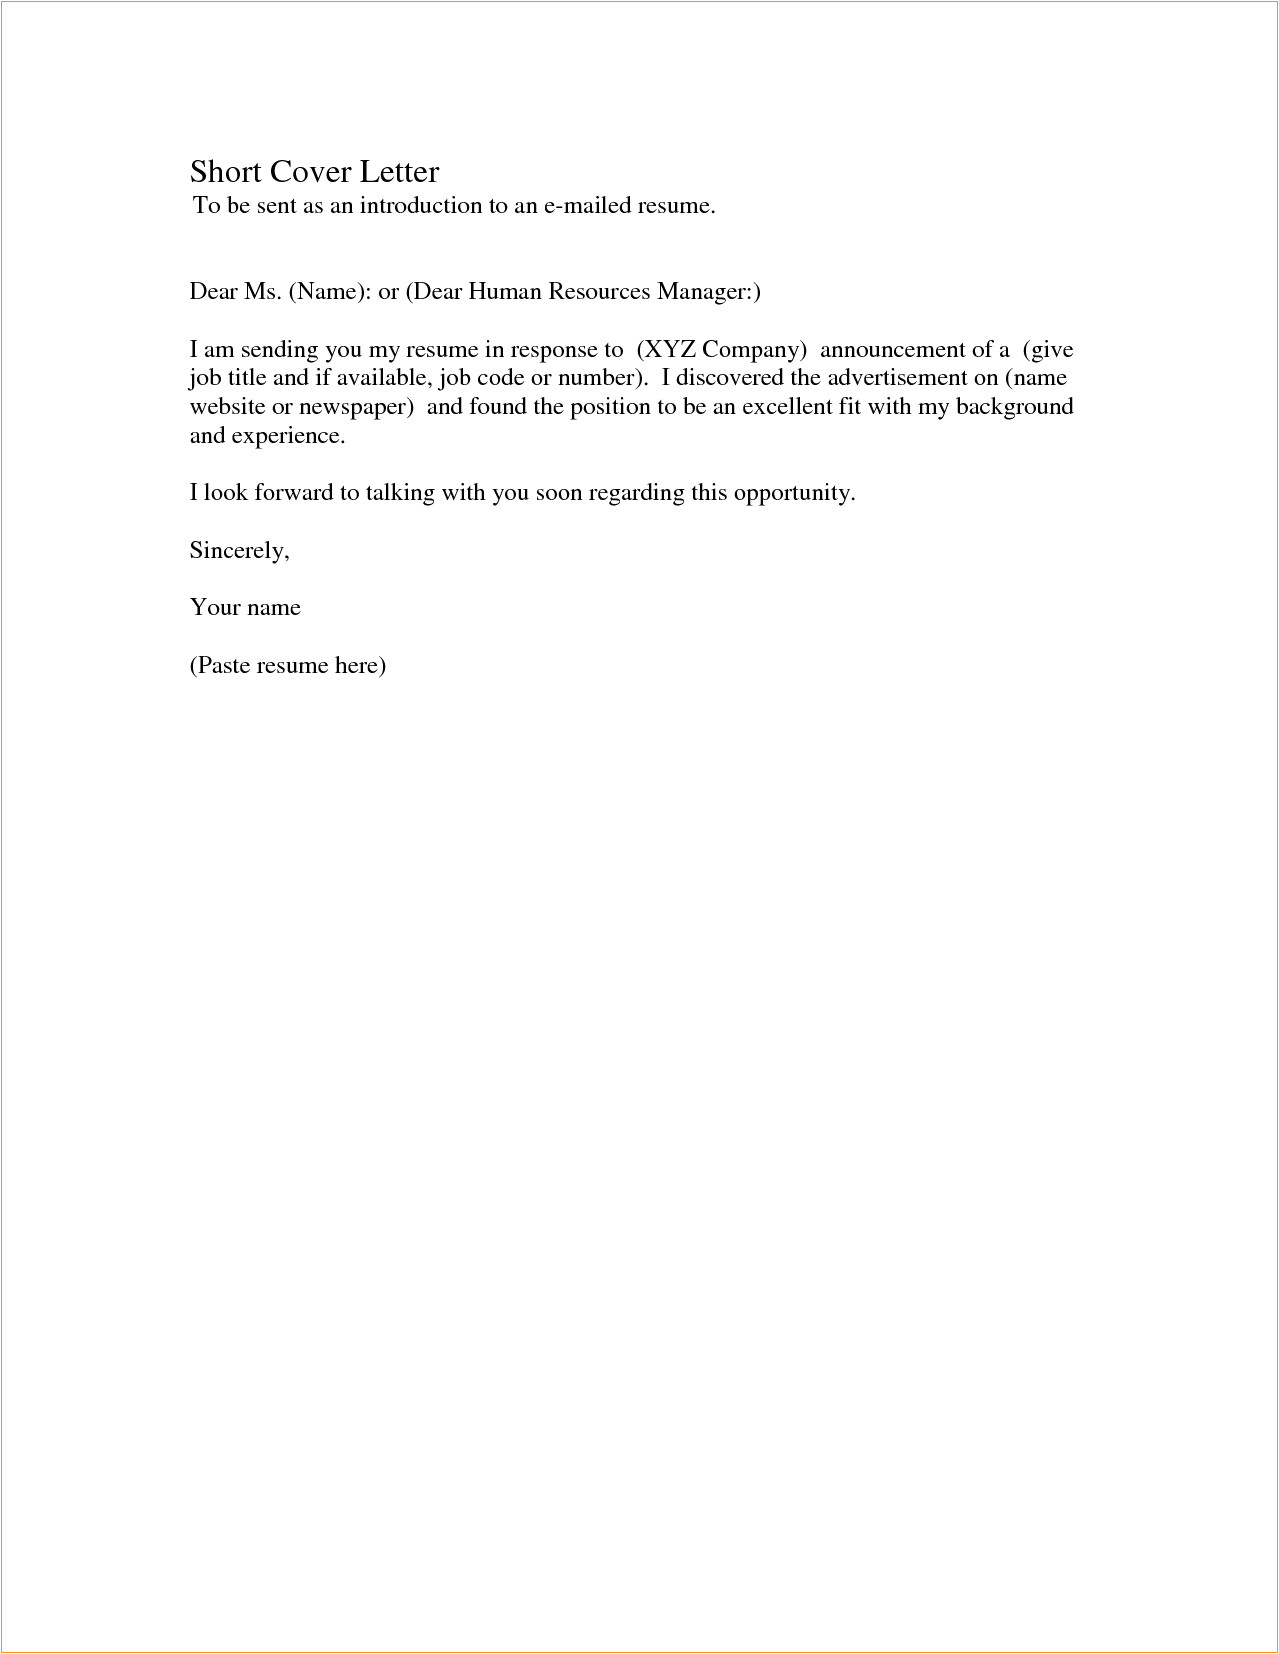 example short cover letter